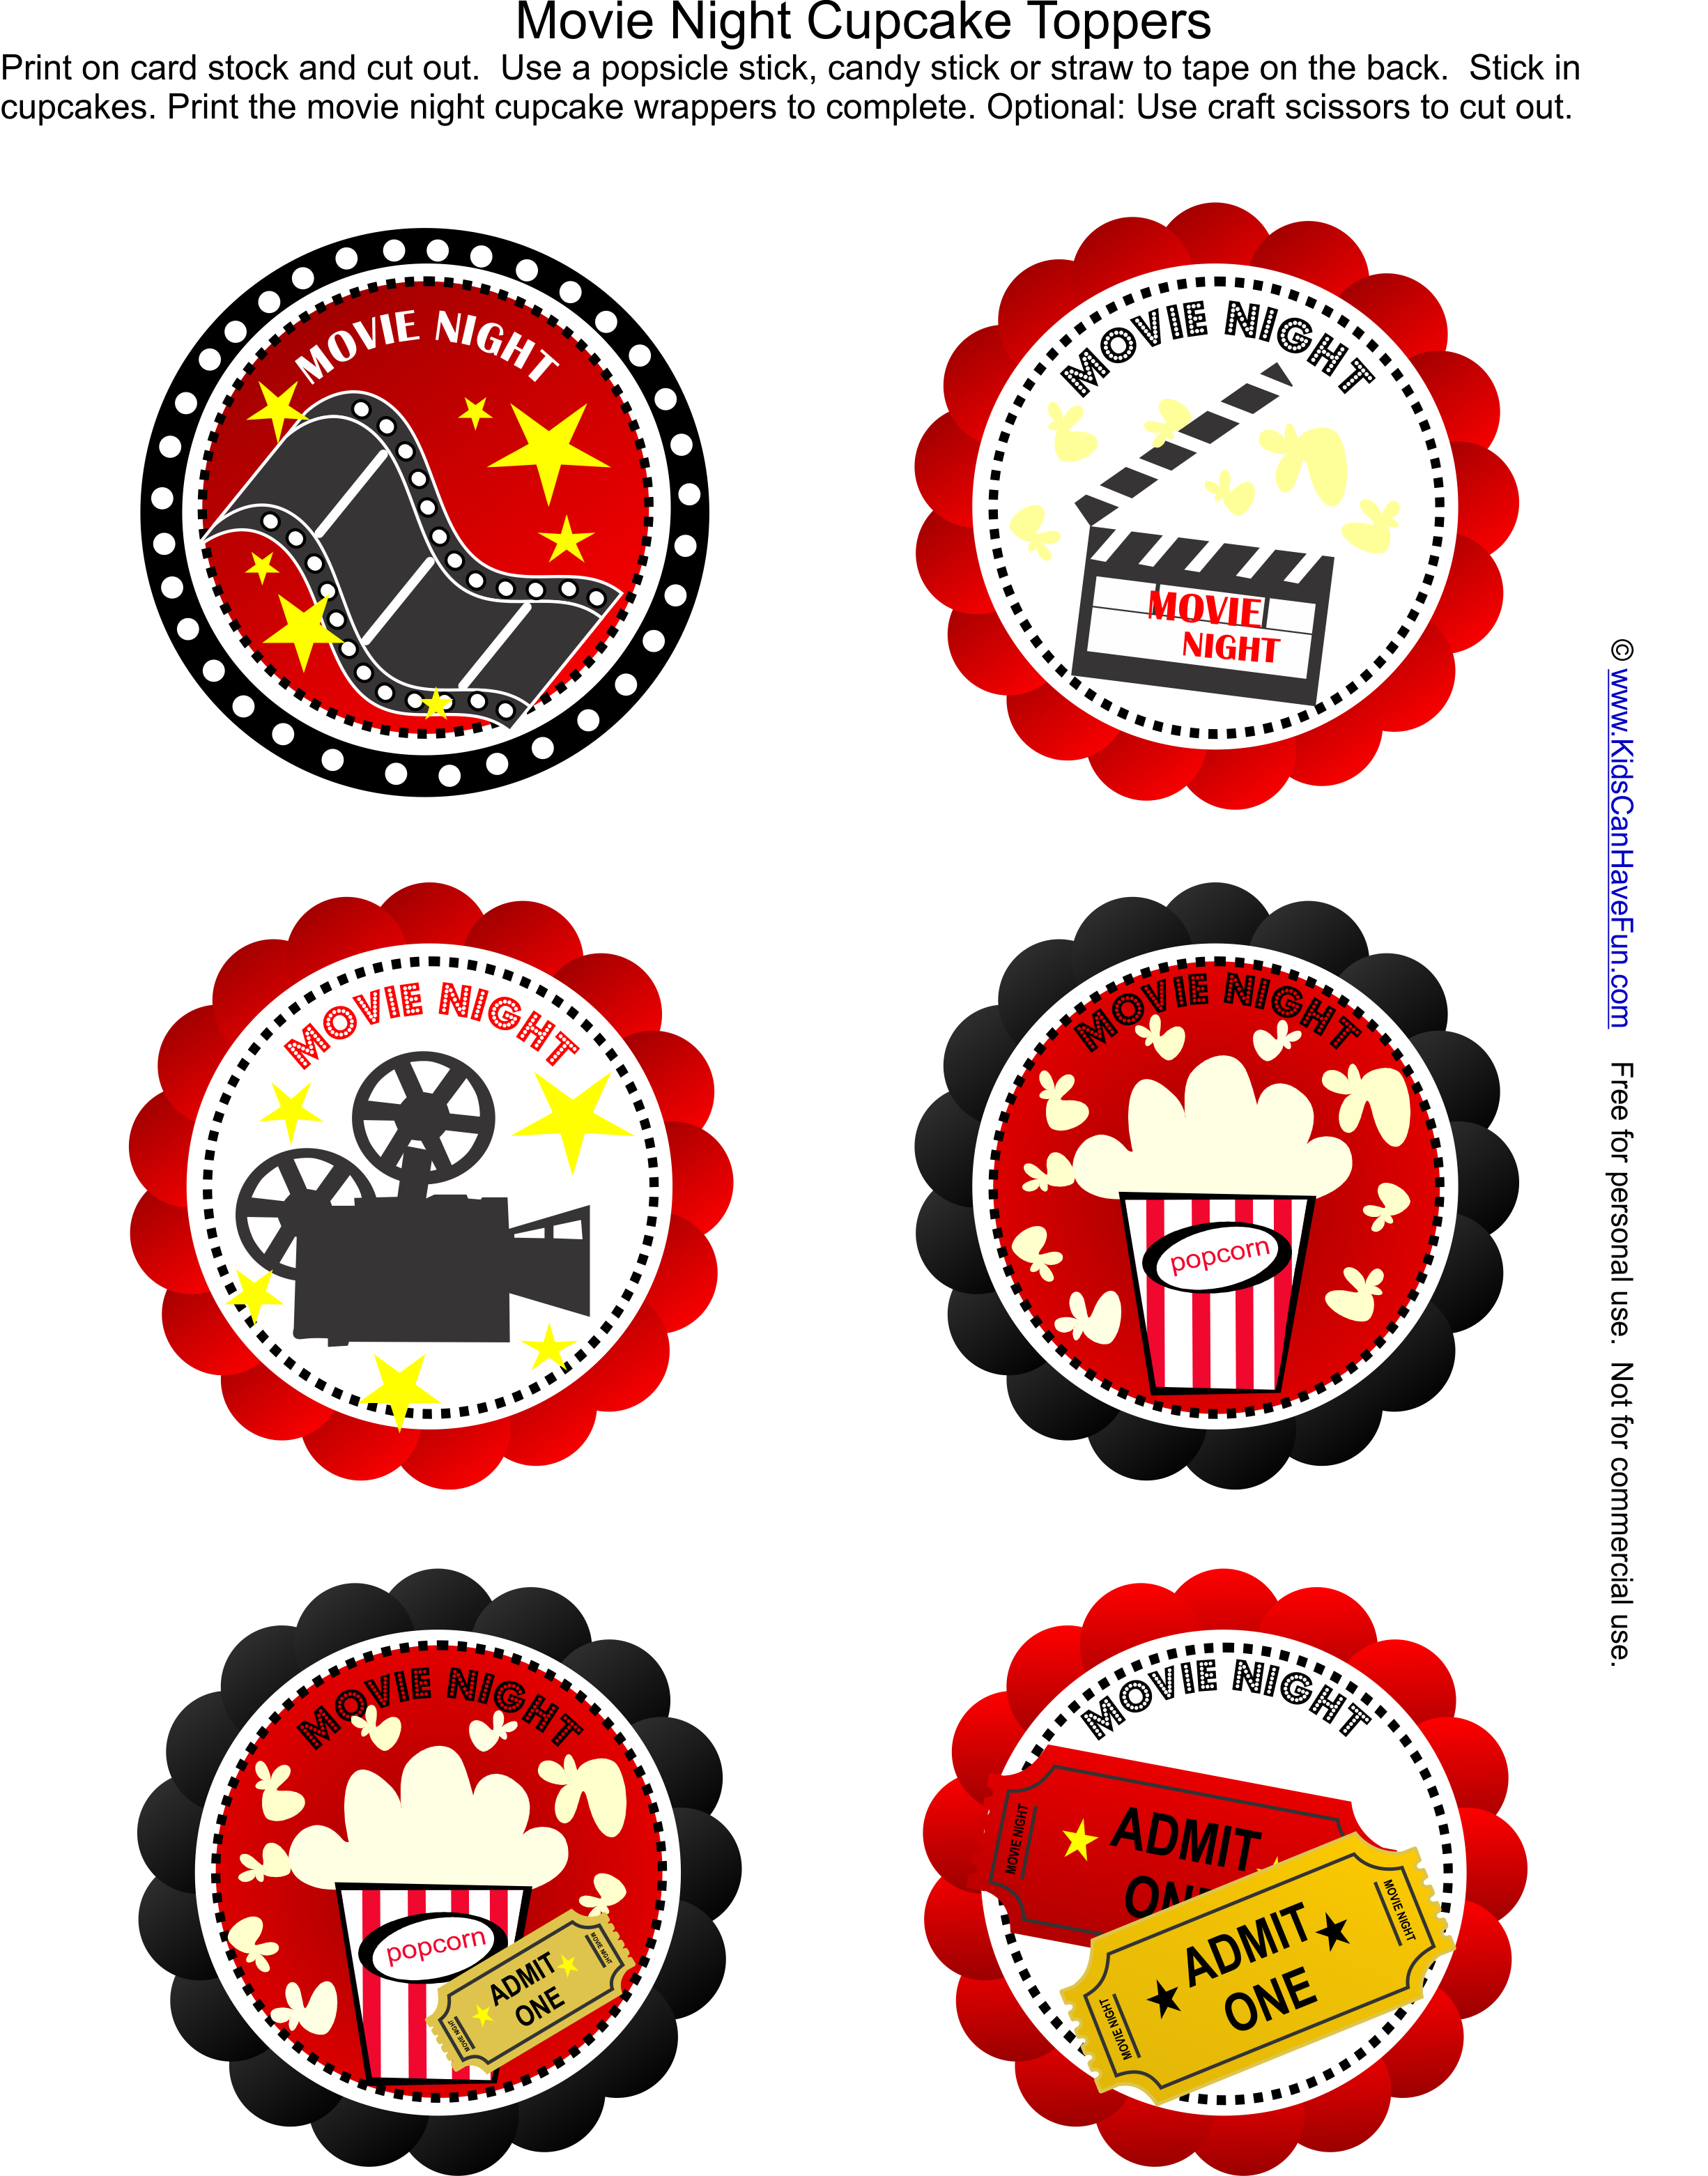 Free Movie Night Party Cupcake Toppers Just Add The Cupcakes Http Www Kidscanhavefun Com Party Planni Movie Themed Party Hollywood Party Theme Movie Night